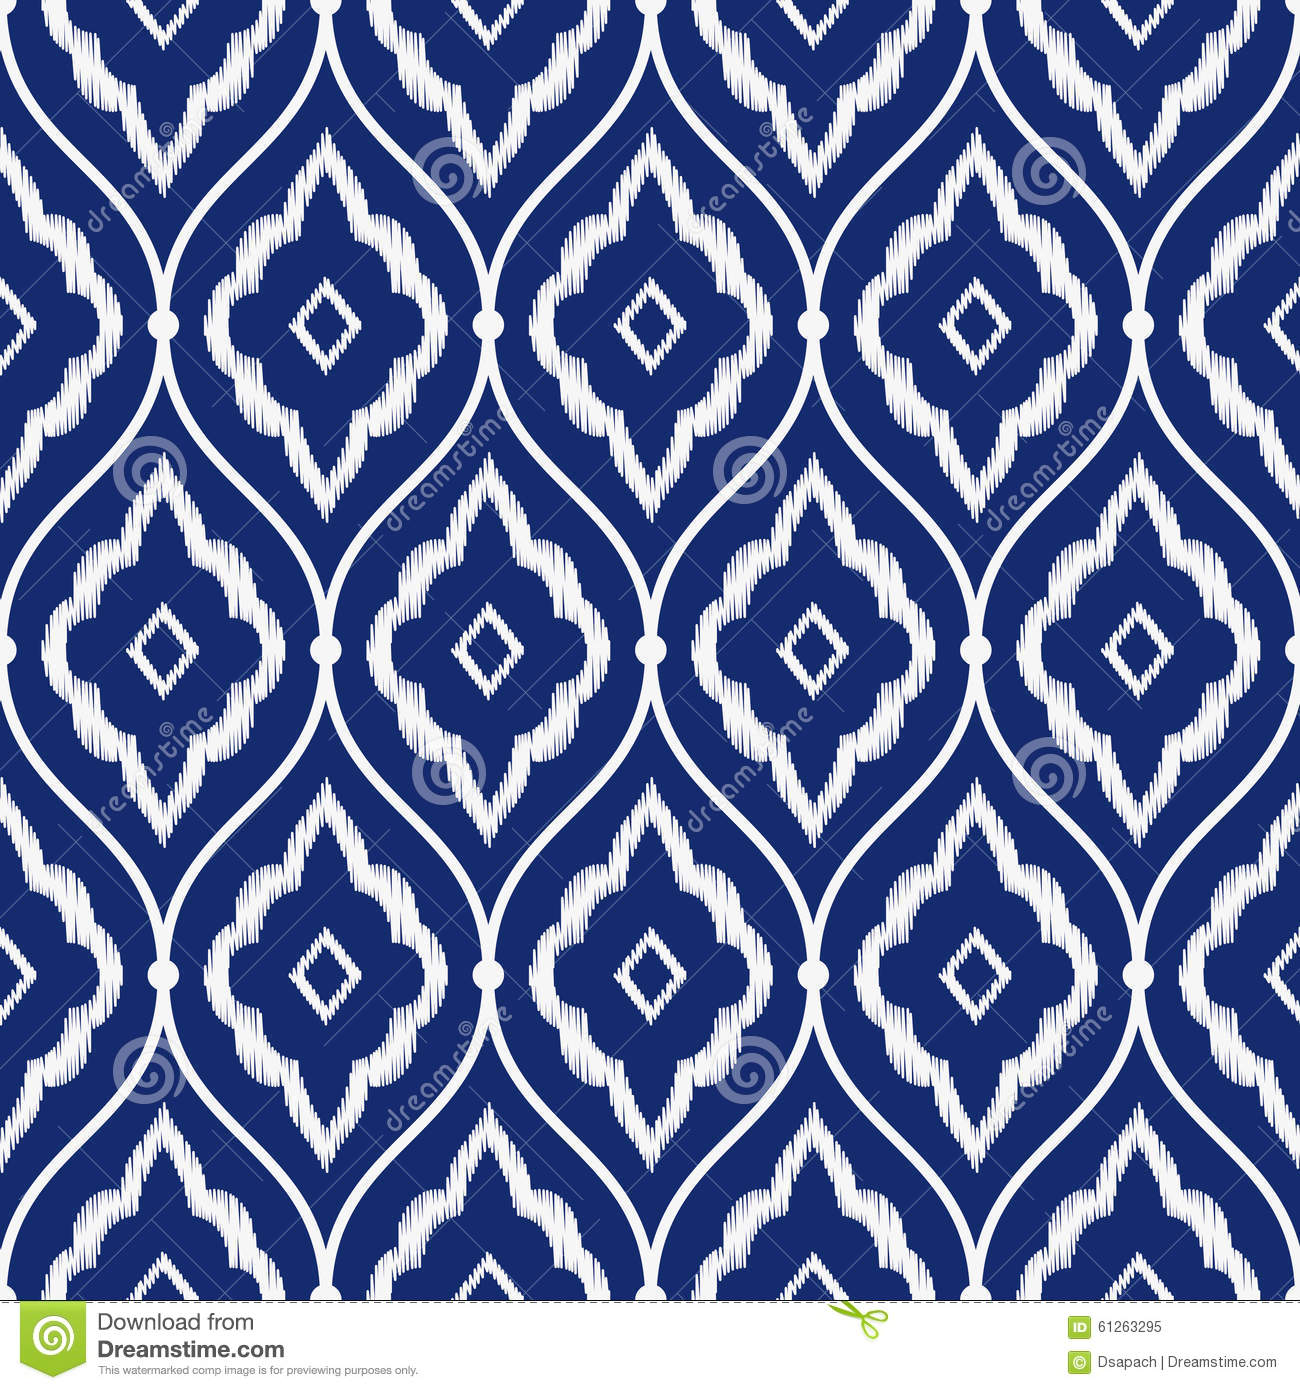 blue moroccan style wallpaper